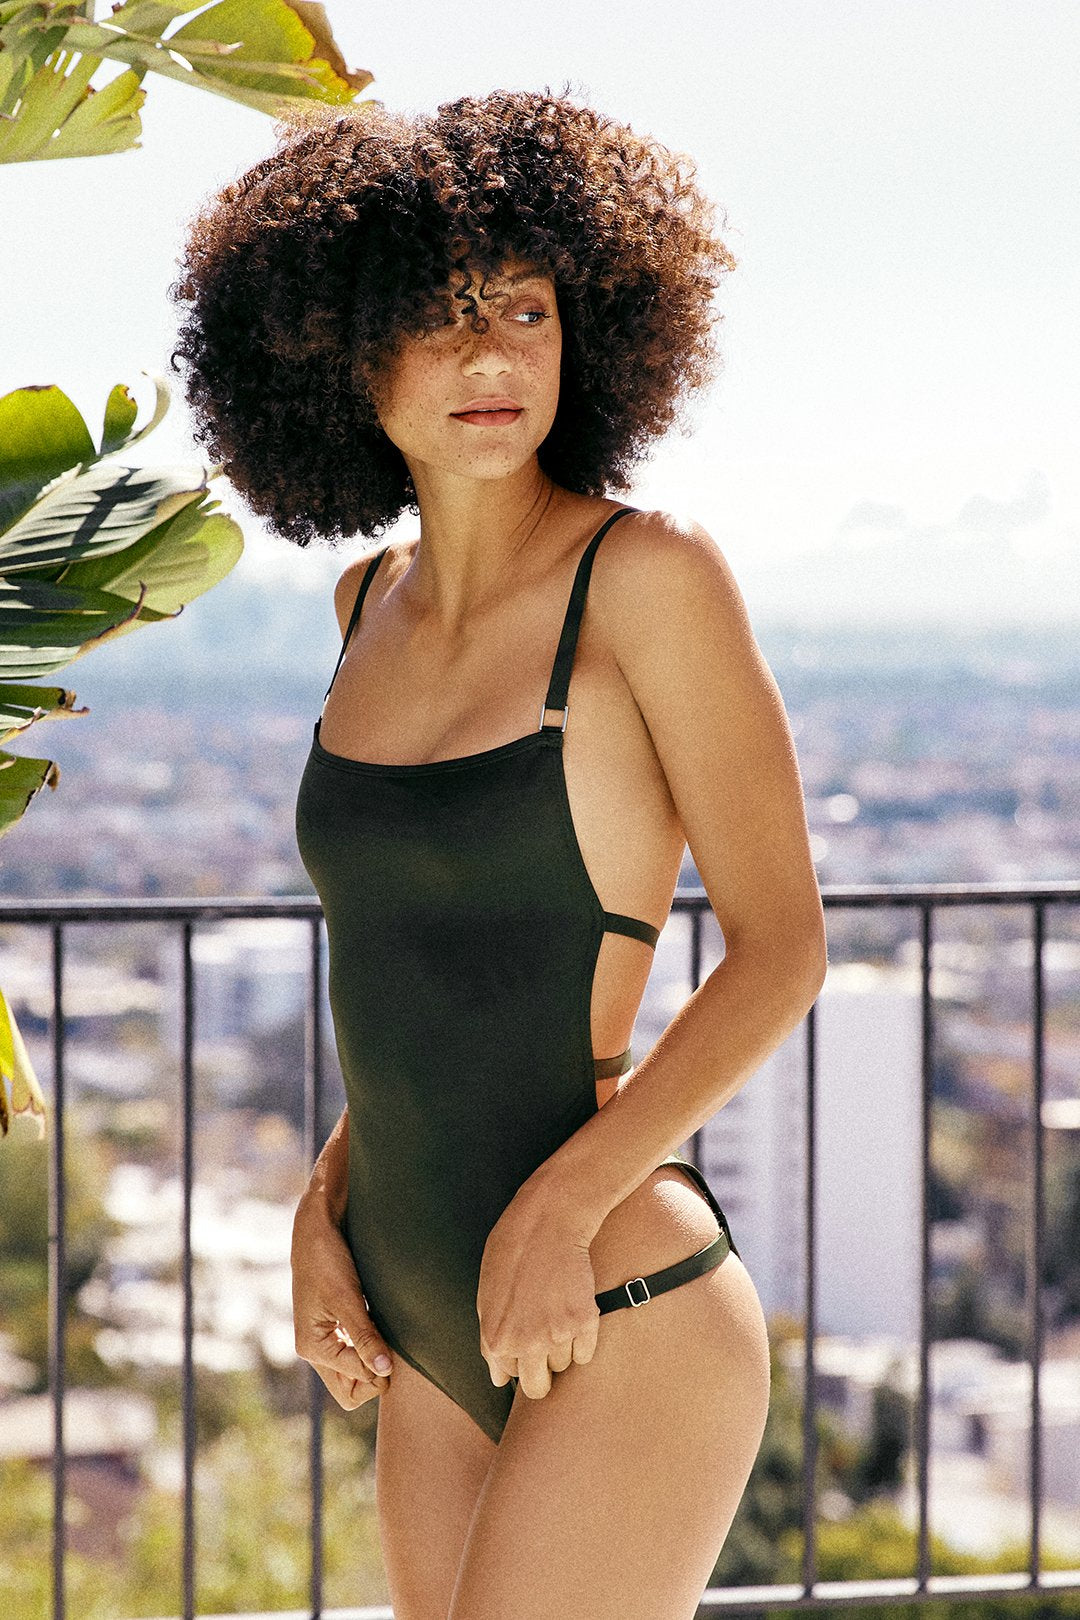 dark green one piece vintage inspired open back bottom moderate coverage eco-friendly sustainable